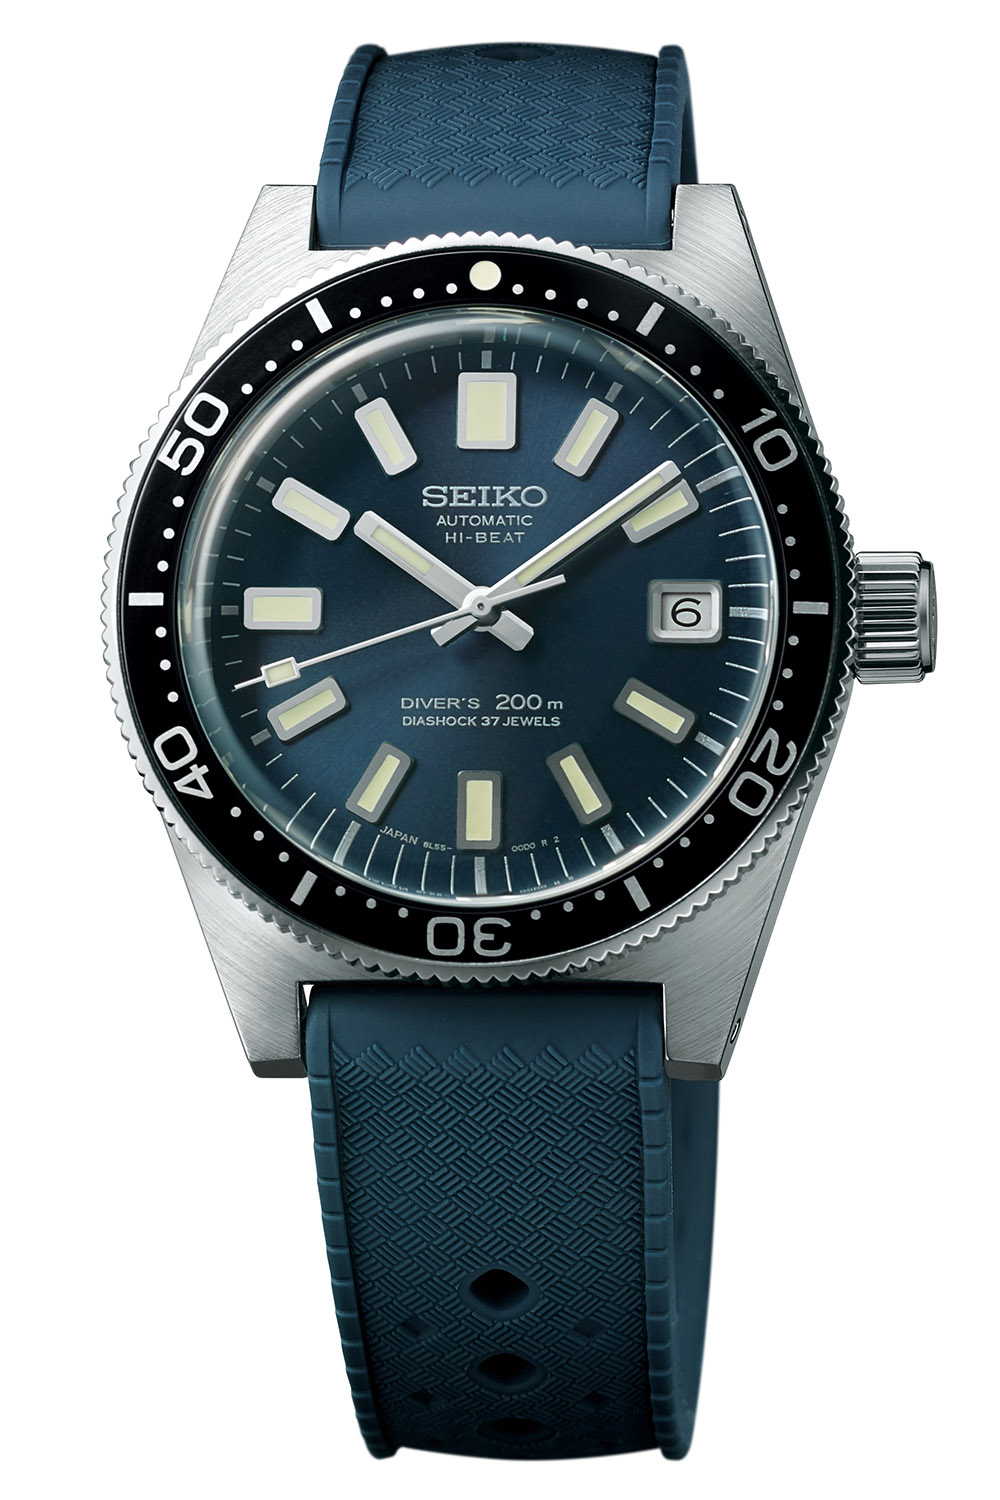 Seiko's new Diver's Watch 55th Anniversary L.E.'s Seiko-Prospex-Diver-55th-Anniversary-Re-Edition-1965-Diver-SLA037-2